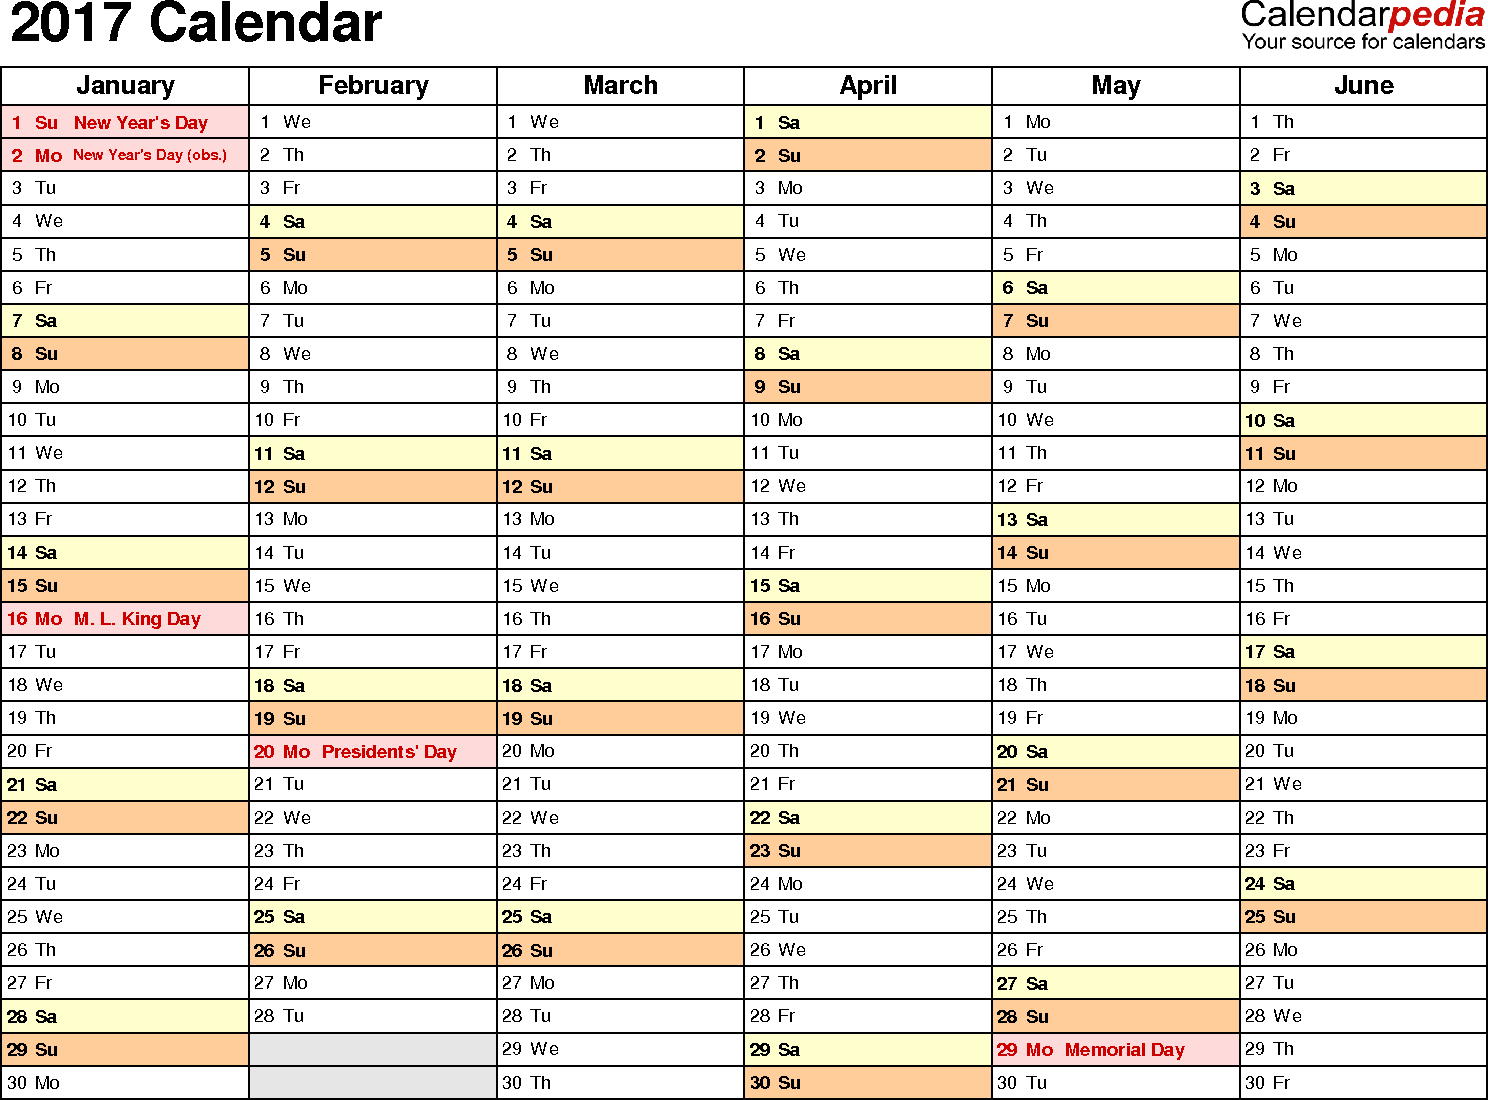 Ediblewildsus  Sweet  Calendar  Download  Free Printable Excel Templates Xls With Entrancing Template   Calendar For Excel Months Horizontally  Pages Landscape Orientation With Breathtaking Select Cell In Excel Also Excel Formatting Dates In Addition Icd  Excel And Excel Query Sql As Well As Percentages Excel Additionally Excel International Inc From Calendarpediacom With Ediblewildsus  Entrancing  Calendar  Download  Free Printable Excel Templates Xls With Breathtaking Template   Calendar For Excel Months Horizontally  Pages Landscape Orientation And Sweet Select Cell In Excel Also Excel Formatting Dates In Addition Icd  Excel From Calendarpediacom